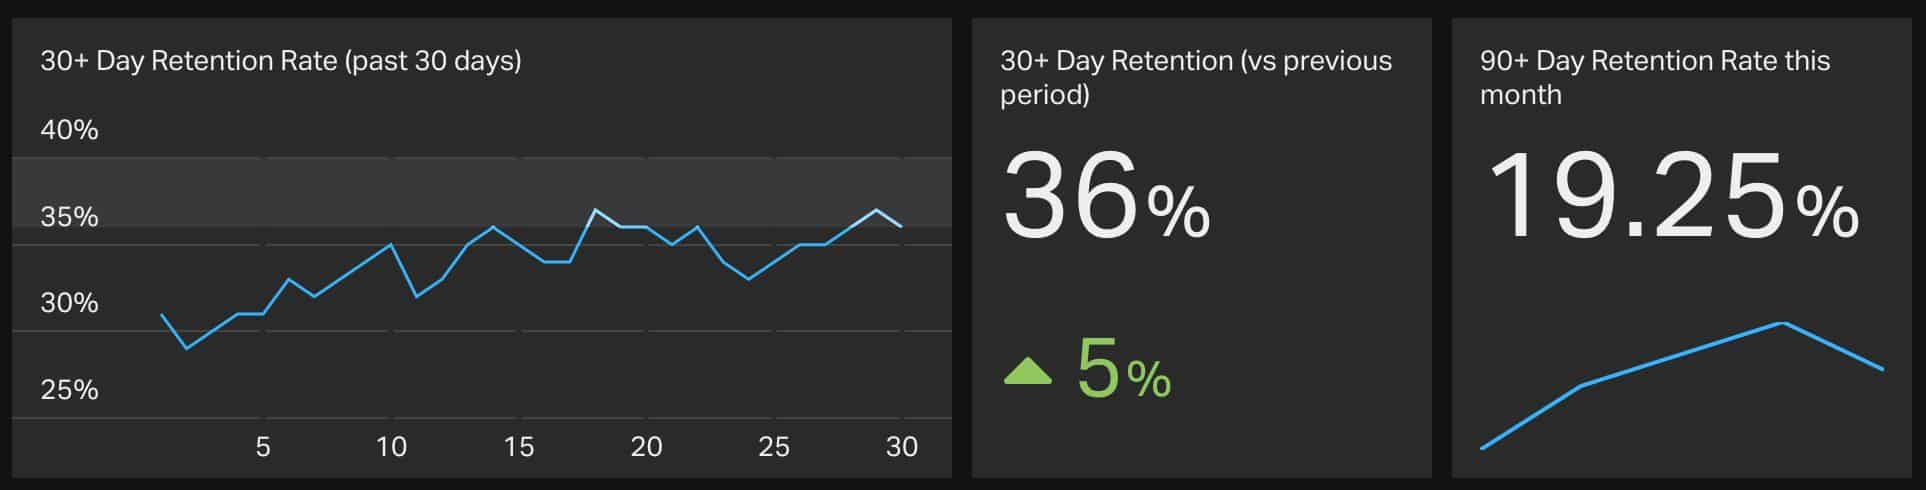 Retention Rate Mobile App Metric